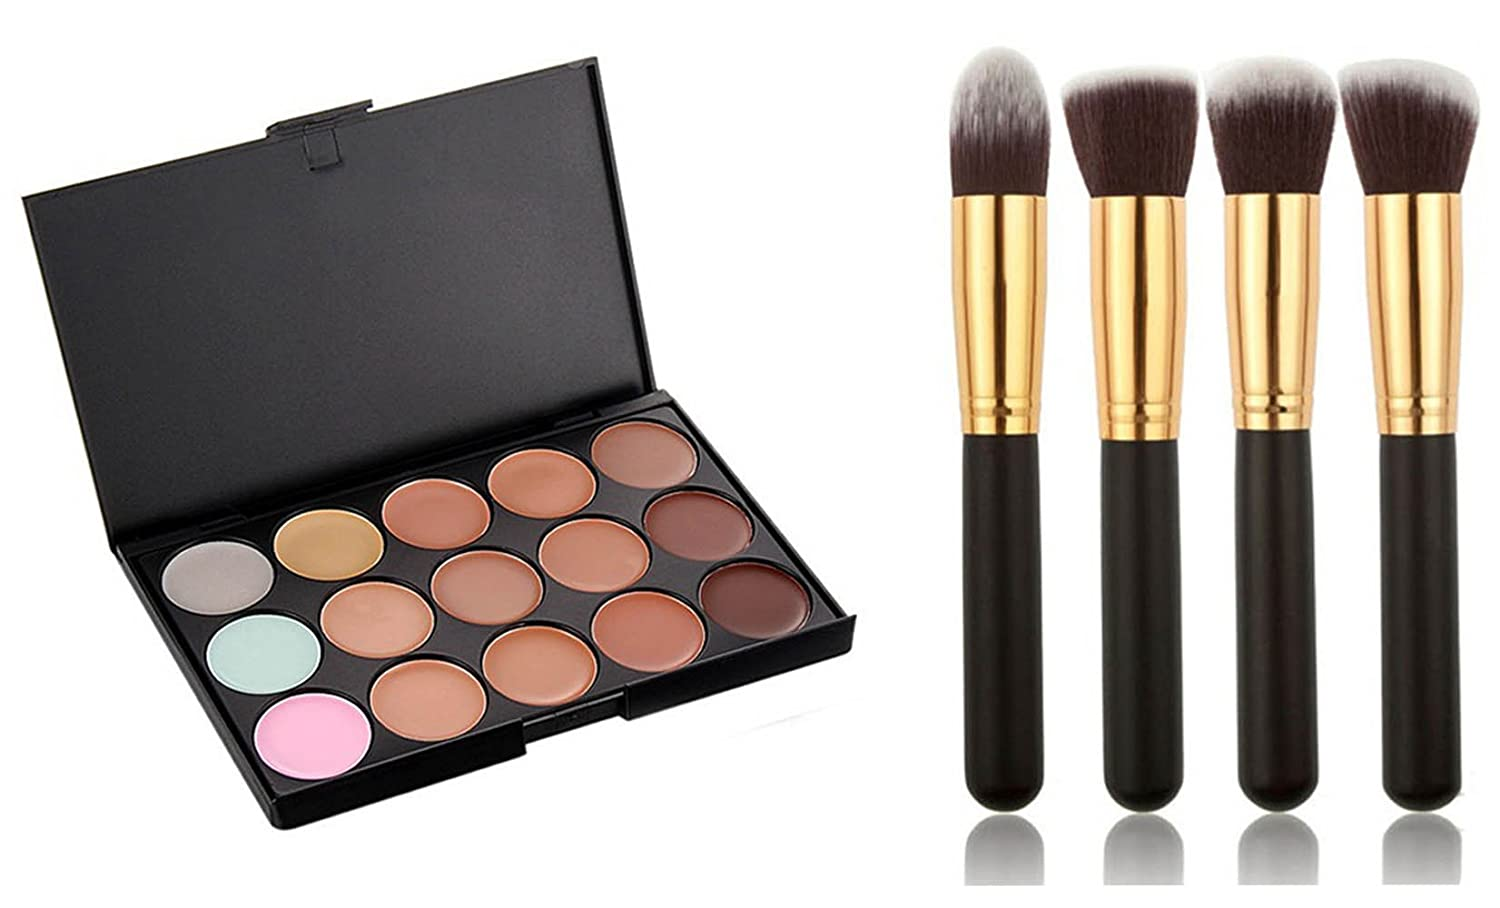 ArRord Pro 15 Colors Face Contour Cream Makeup Concealer Palette + Foundation Powder Brush Kit Arrcbrush04